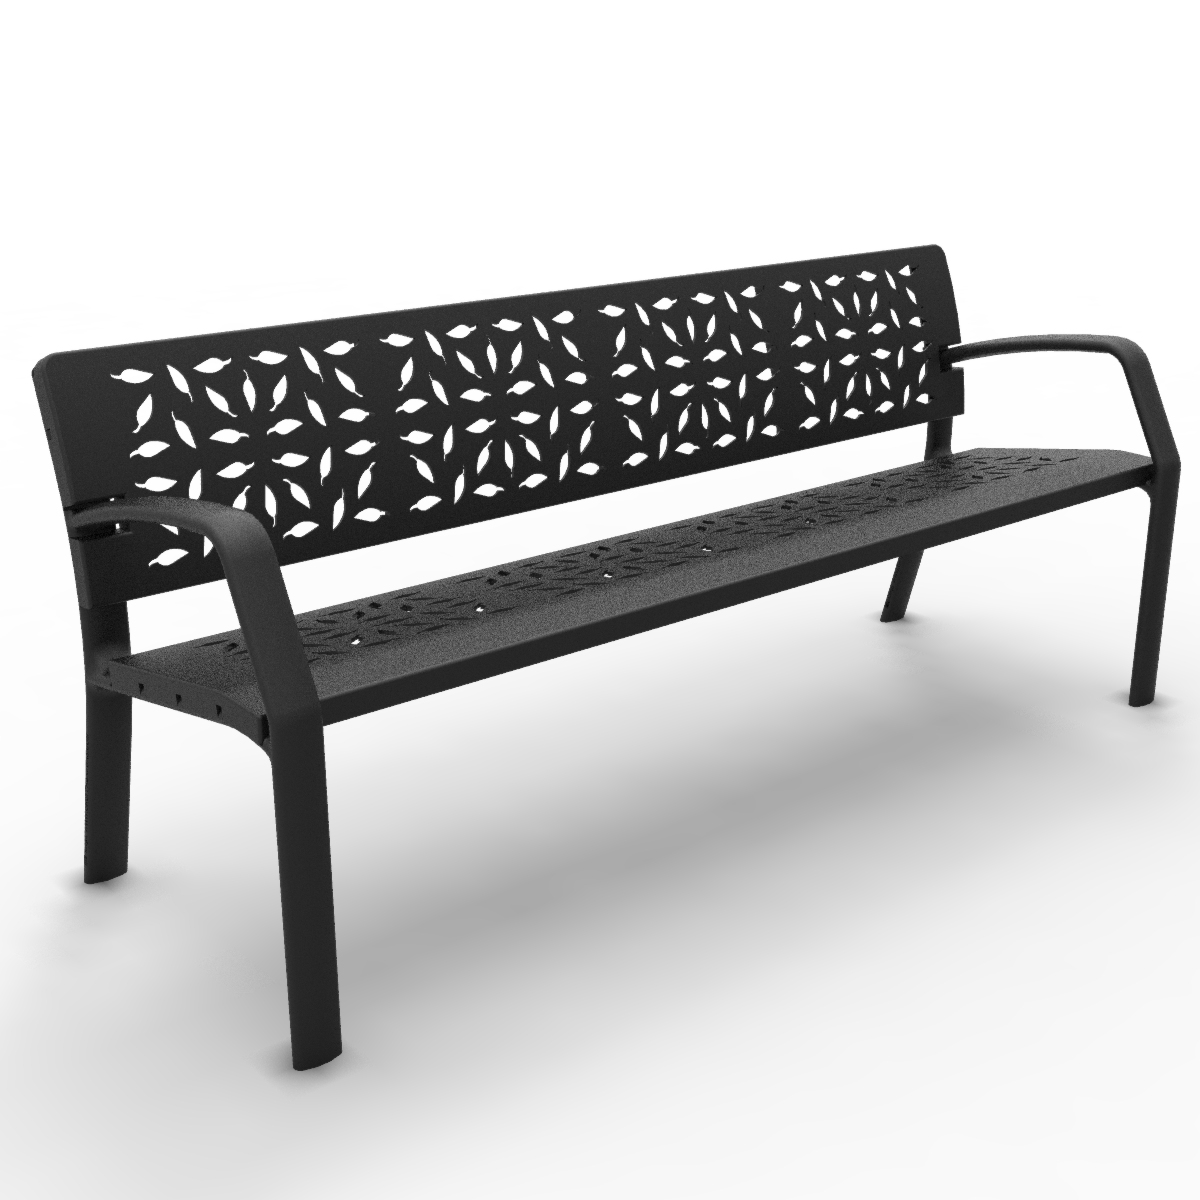 Laforest Bench C-1011